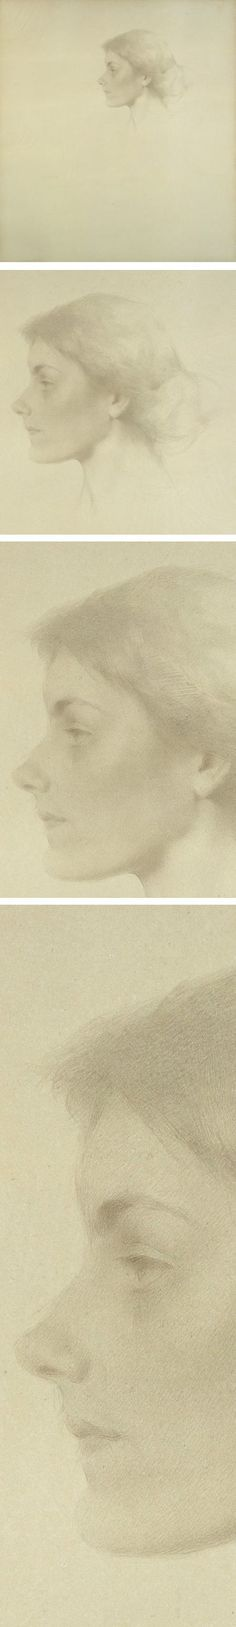 Eye Candy for Today: Thomas Wilmer Dewing silverpoint portrait